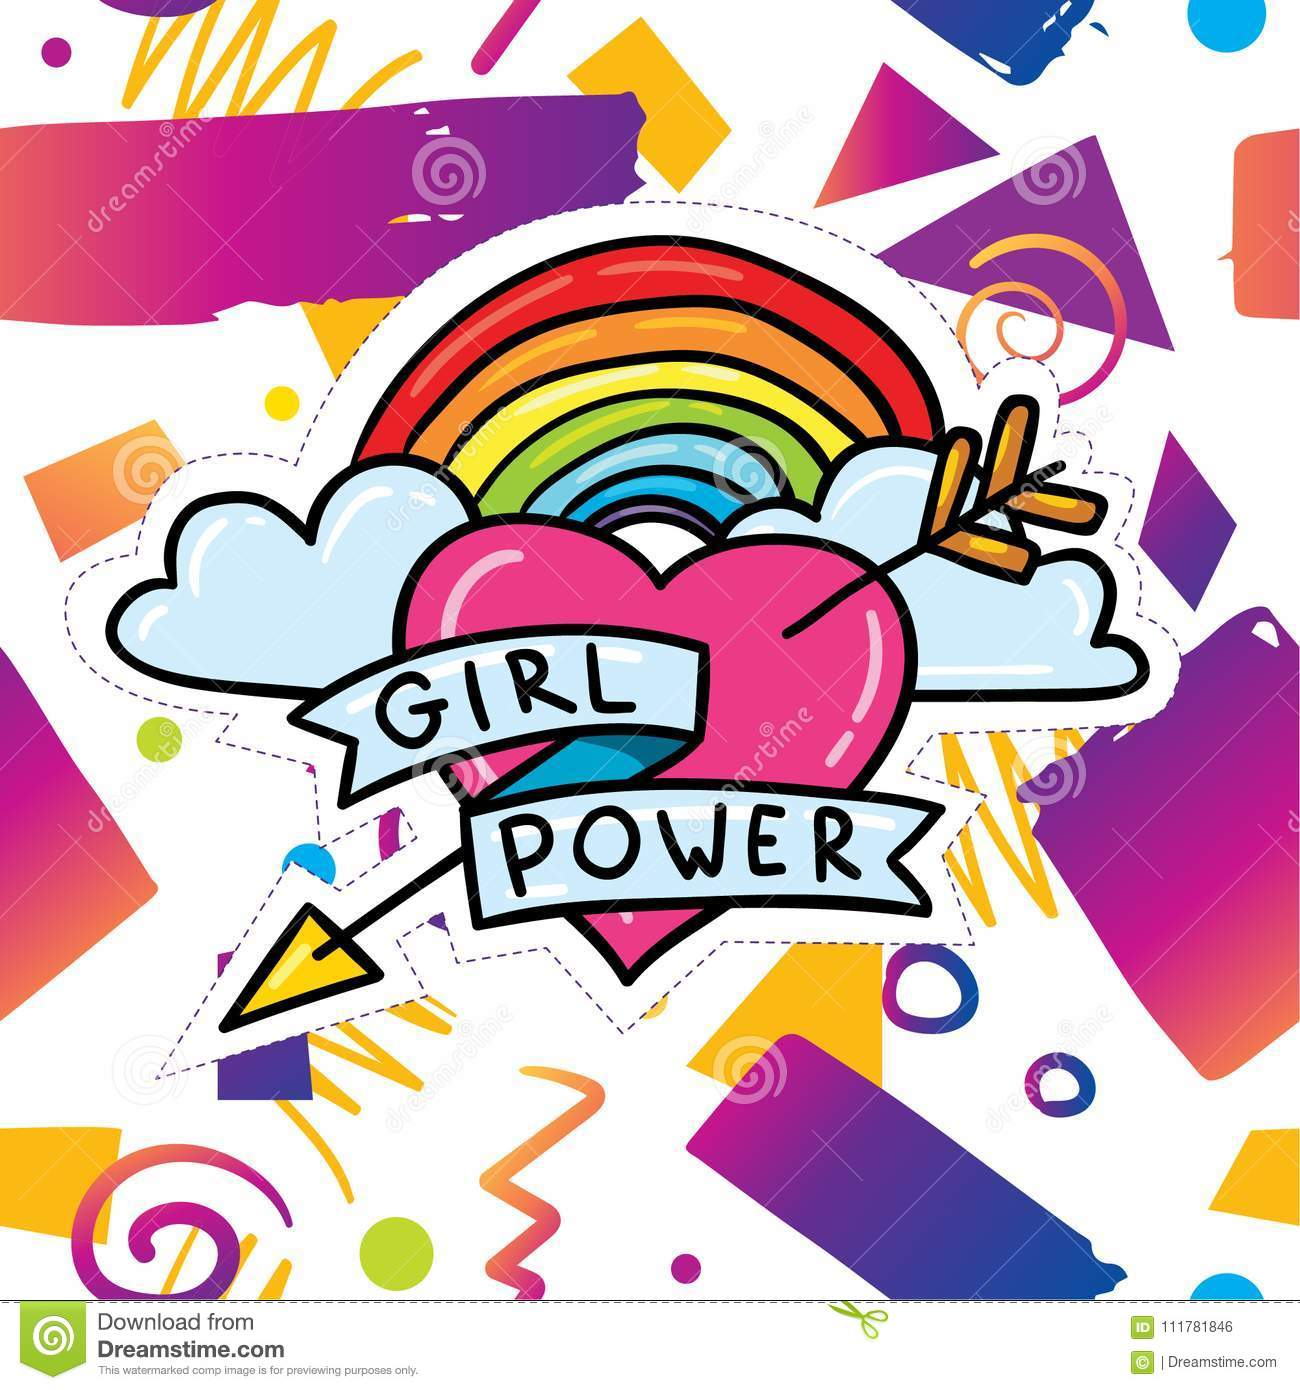 Trendy card design with girl power sticker